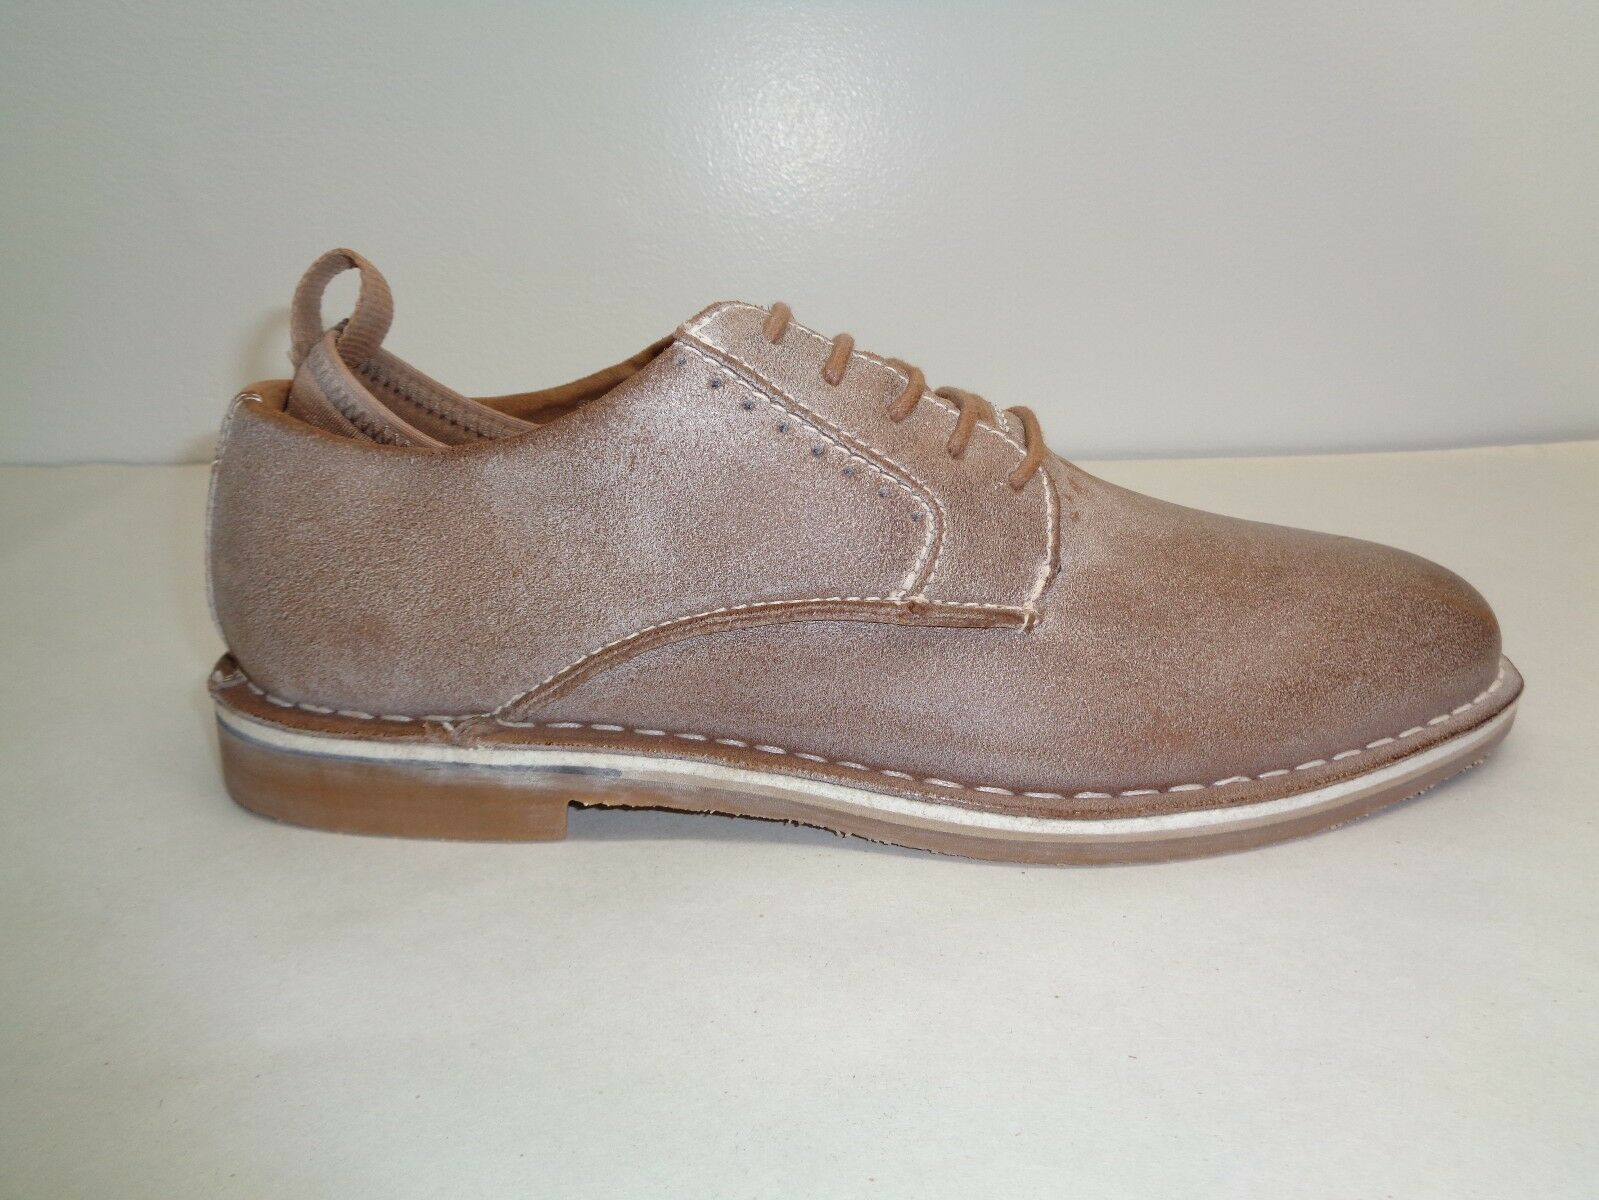 Steve Madden Size 13 M STANNIS Tan Distressed Leather Oxfords New Mens shoes